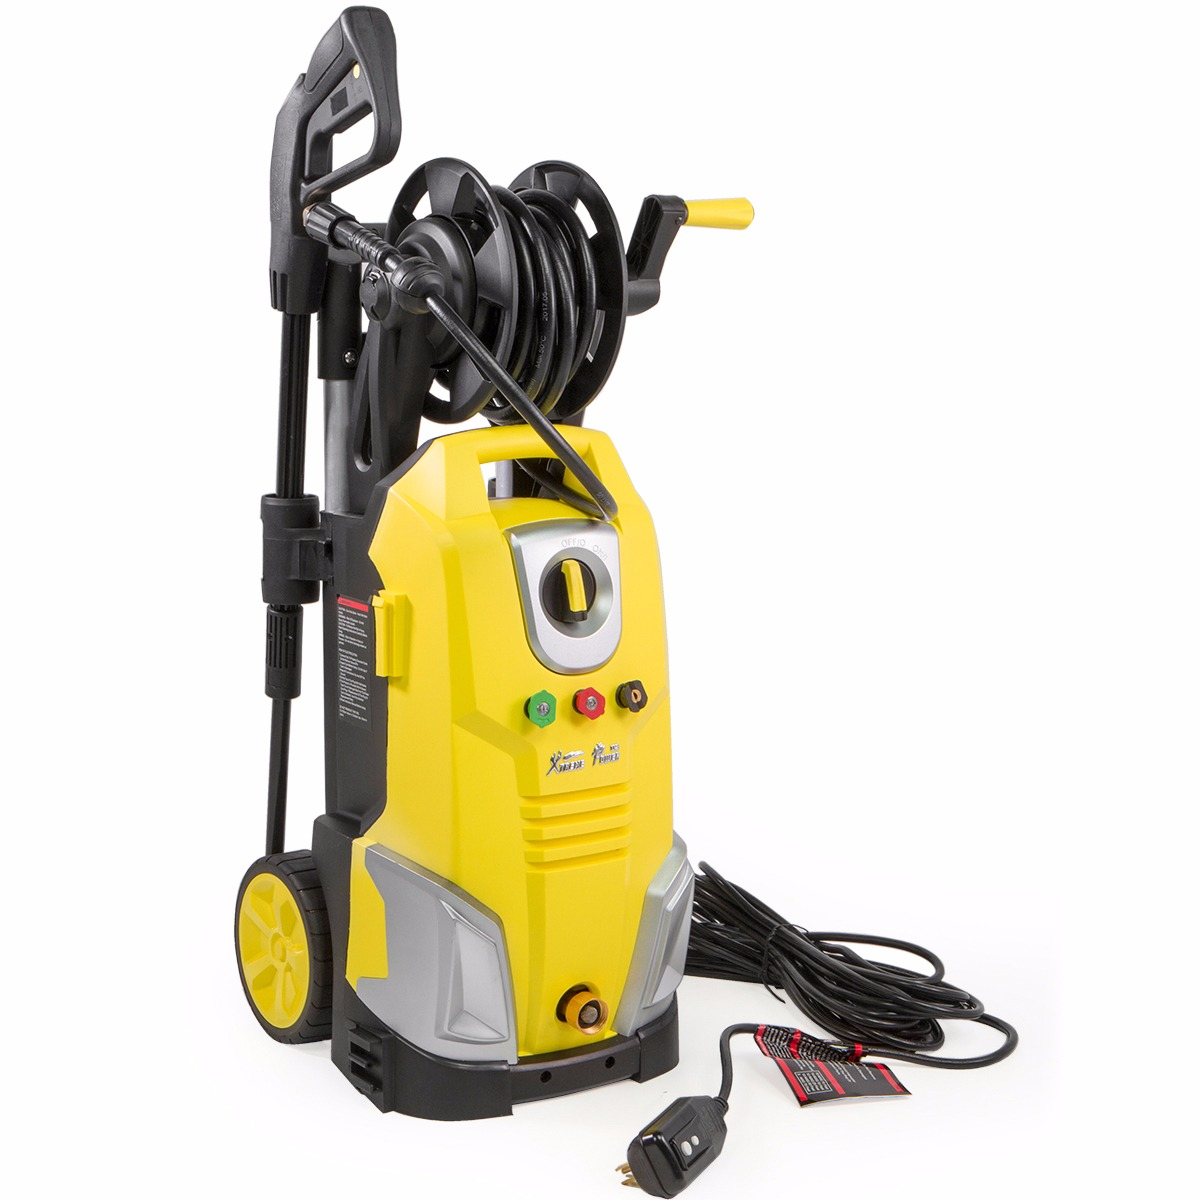 XtremepowerUS 2000PSI 1.7GPM Electric High Pressure Washer Nozzle Hose, with Wheels